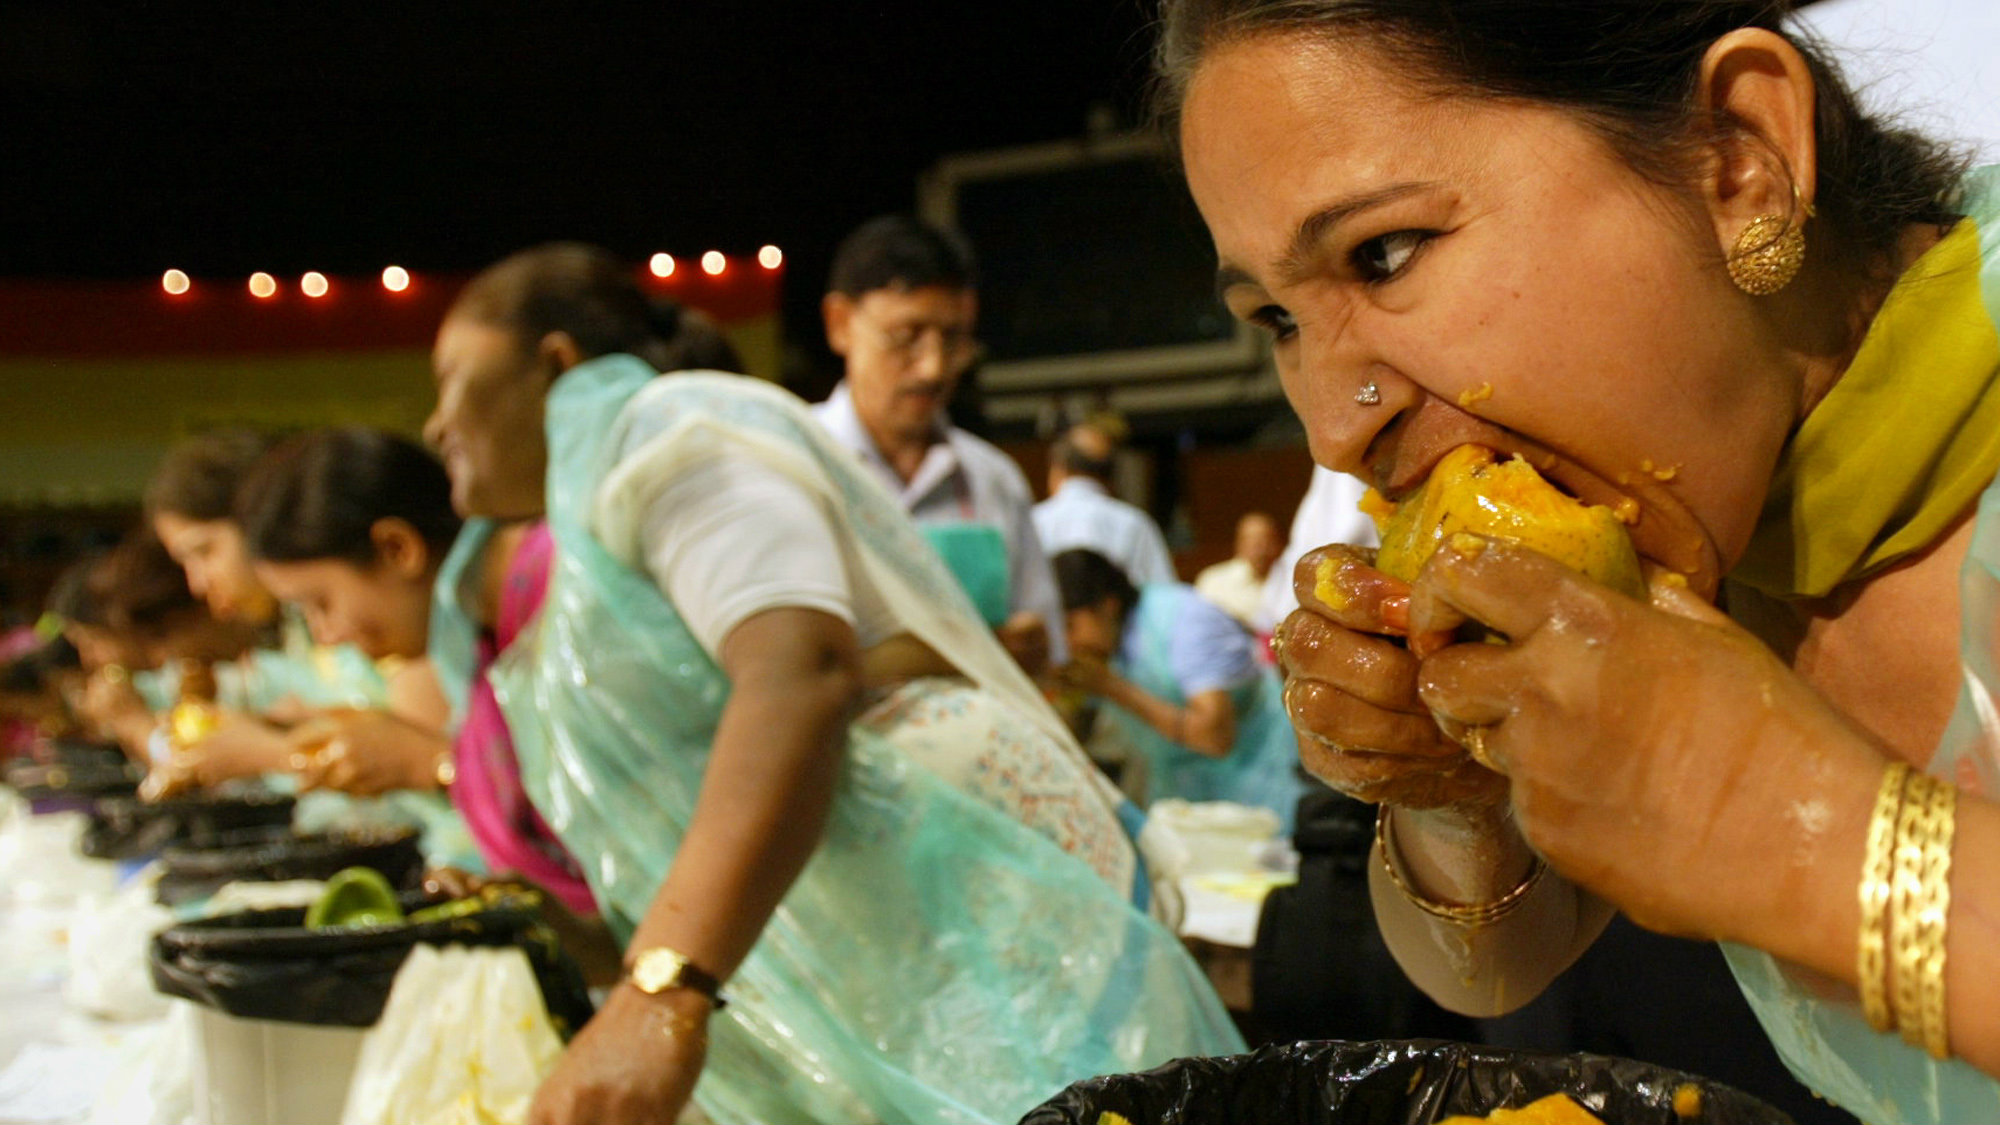 A woman eats a mango at a mango eating competition in New Delhi, India, Saturday, July 8, 2006. The contest was organized on the first day of the 18th Mango festival, where nearly 500 varieties of the fruit are on display, including the usual known varieties alphanso and safeda to the more exotic fazli, mallika and amrapali.